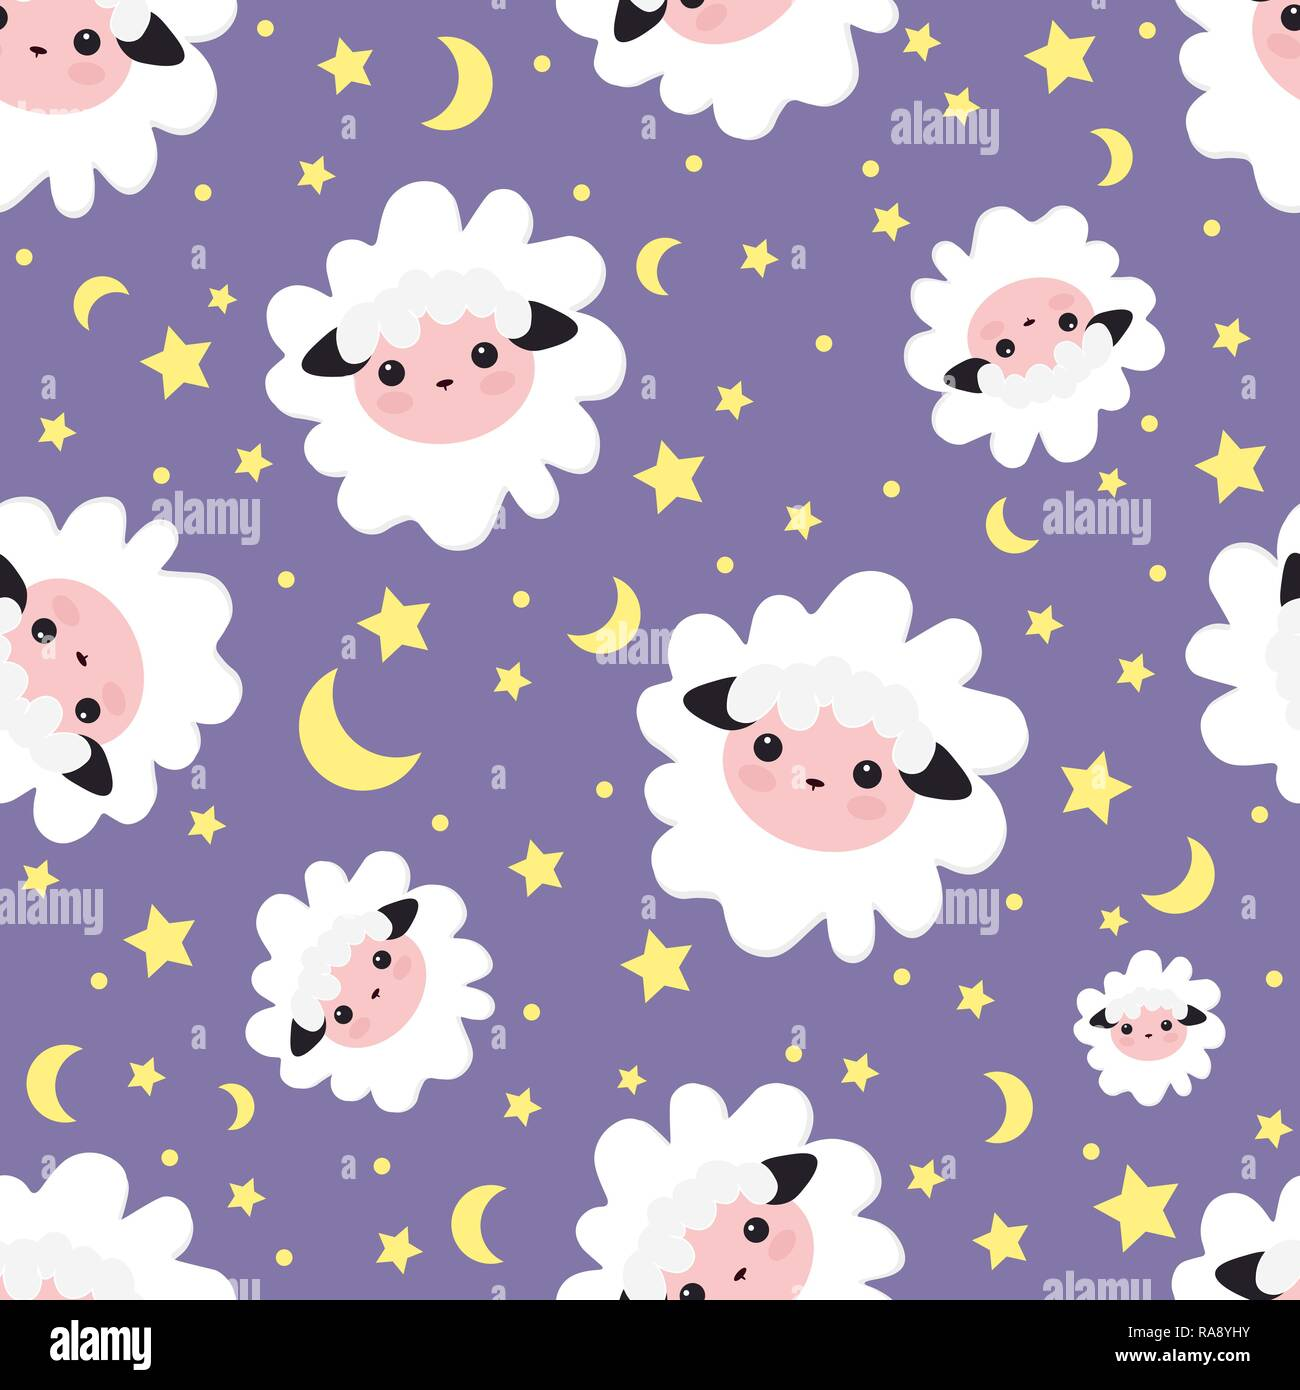 Sleeping dreams pattern. vector illustration seamless sheep animal. pattern for girls with cute sheep in the starry sky . Textile design, wallpapers,  - Stock Vector